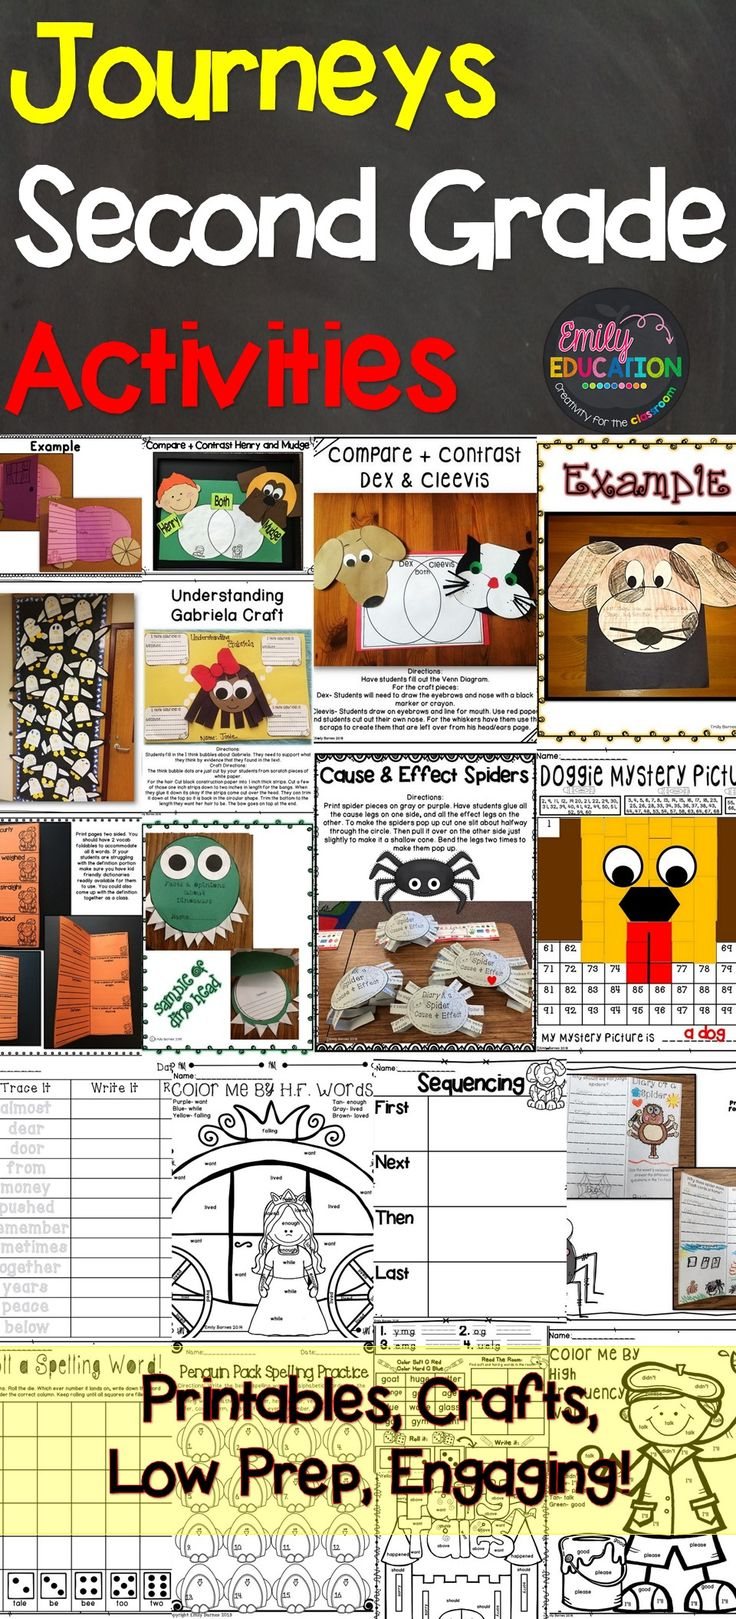 Journey Second Grade Activities! This teacher has done it all: Low Prep! Crafts, Focus Wall Posters, Printables. Come see what has made students and teachers fall in love with teaching Journeys!